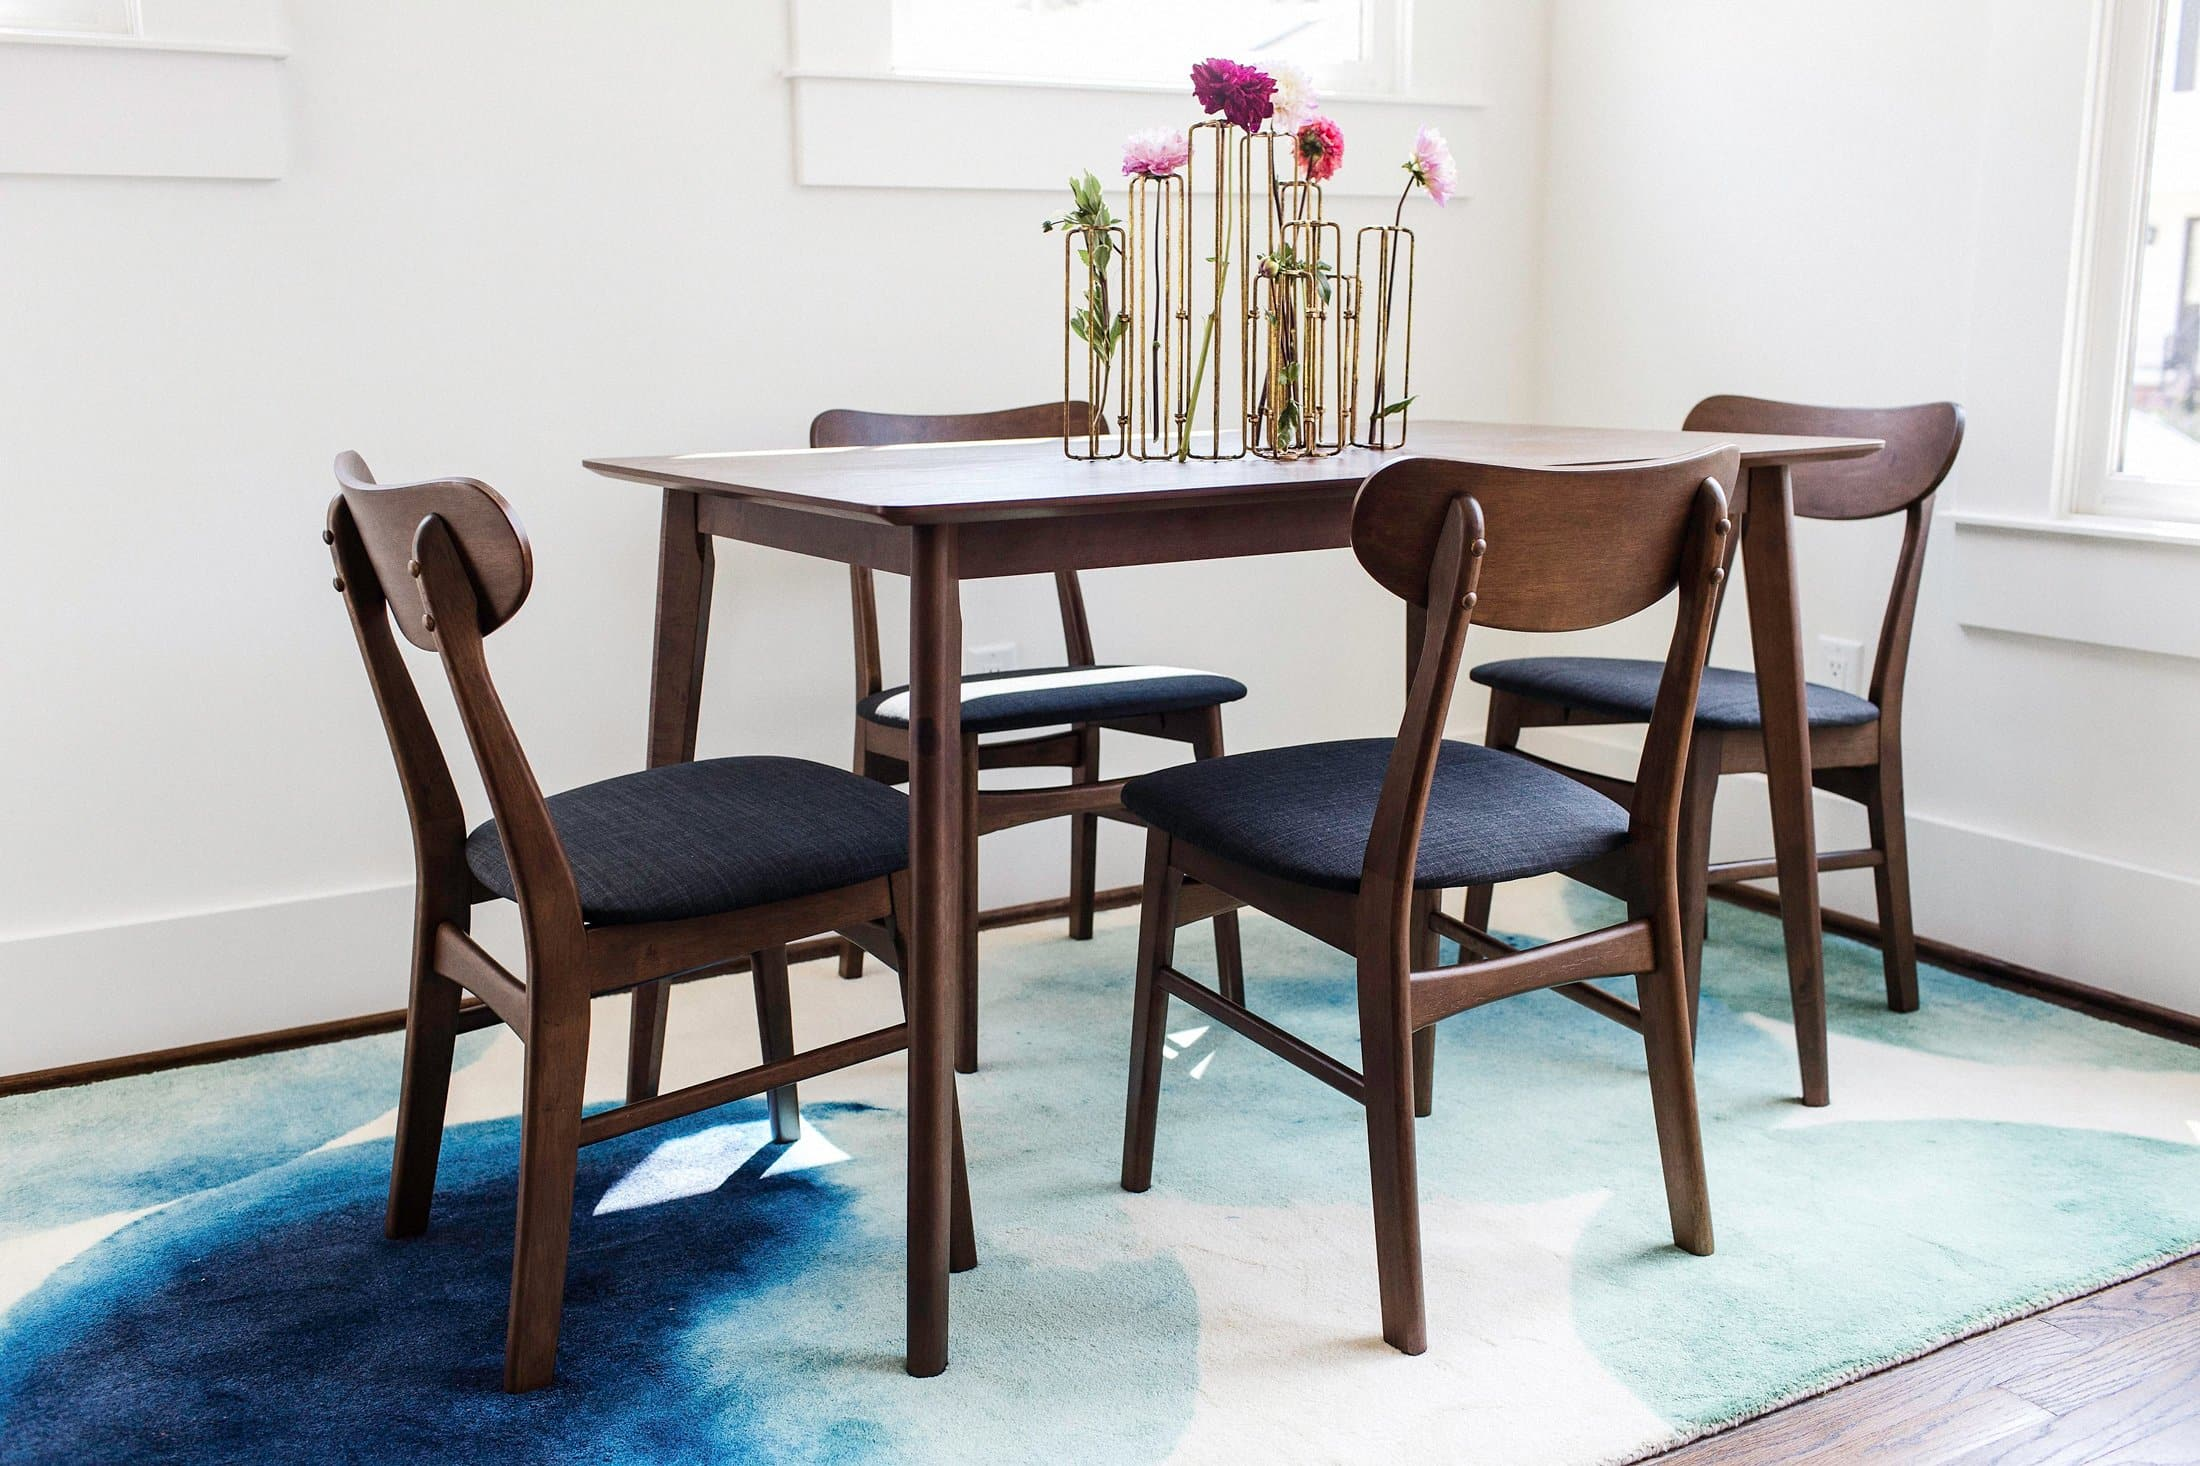 Ava Dining Table – Edloe Finch Furniture Co